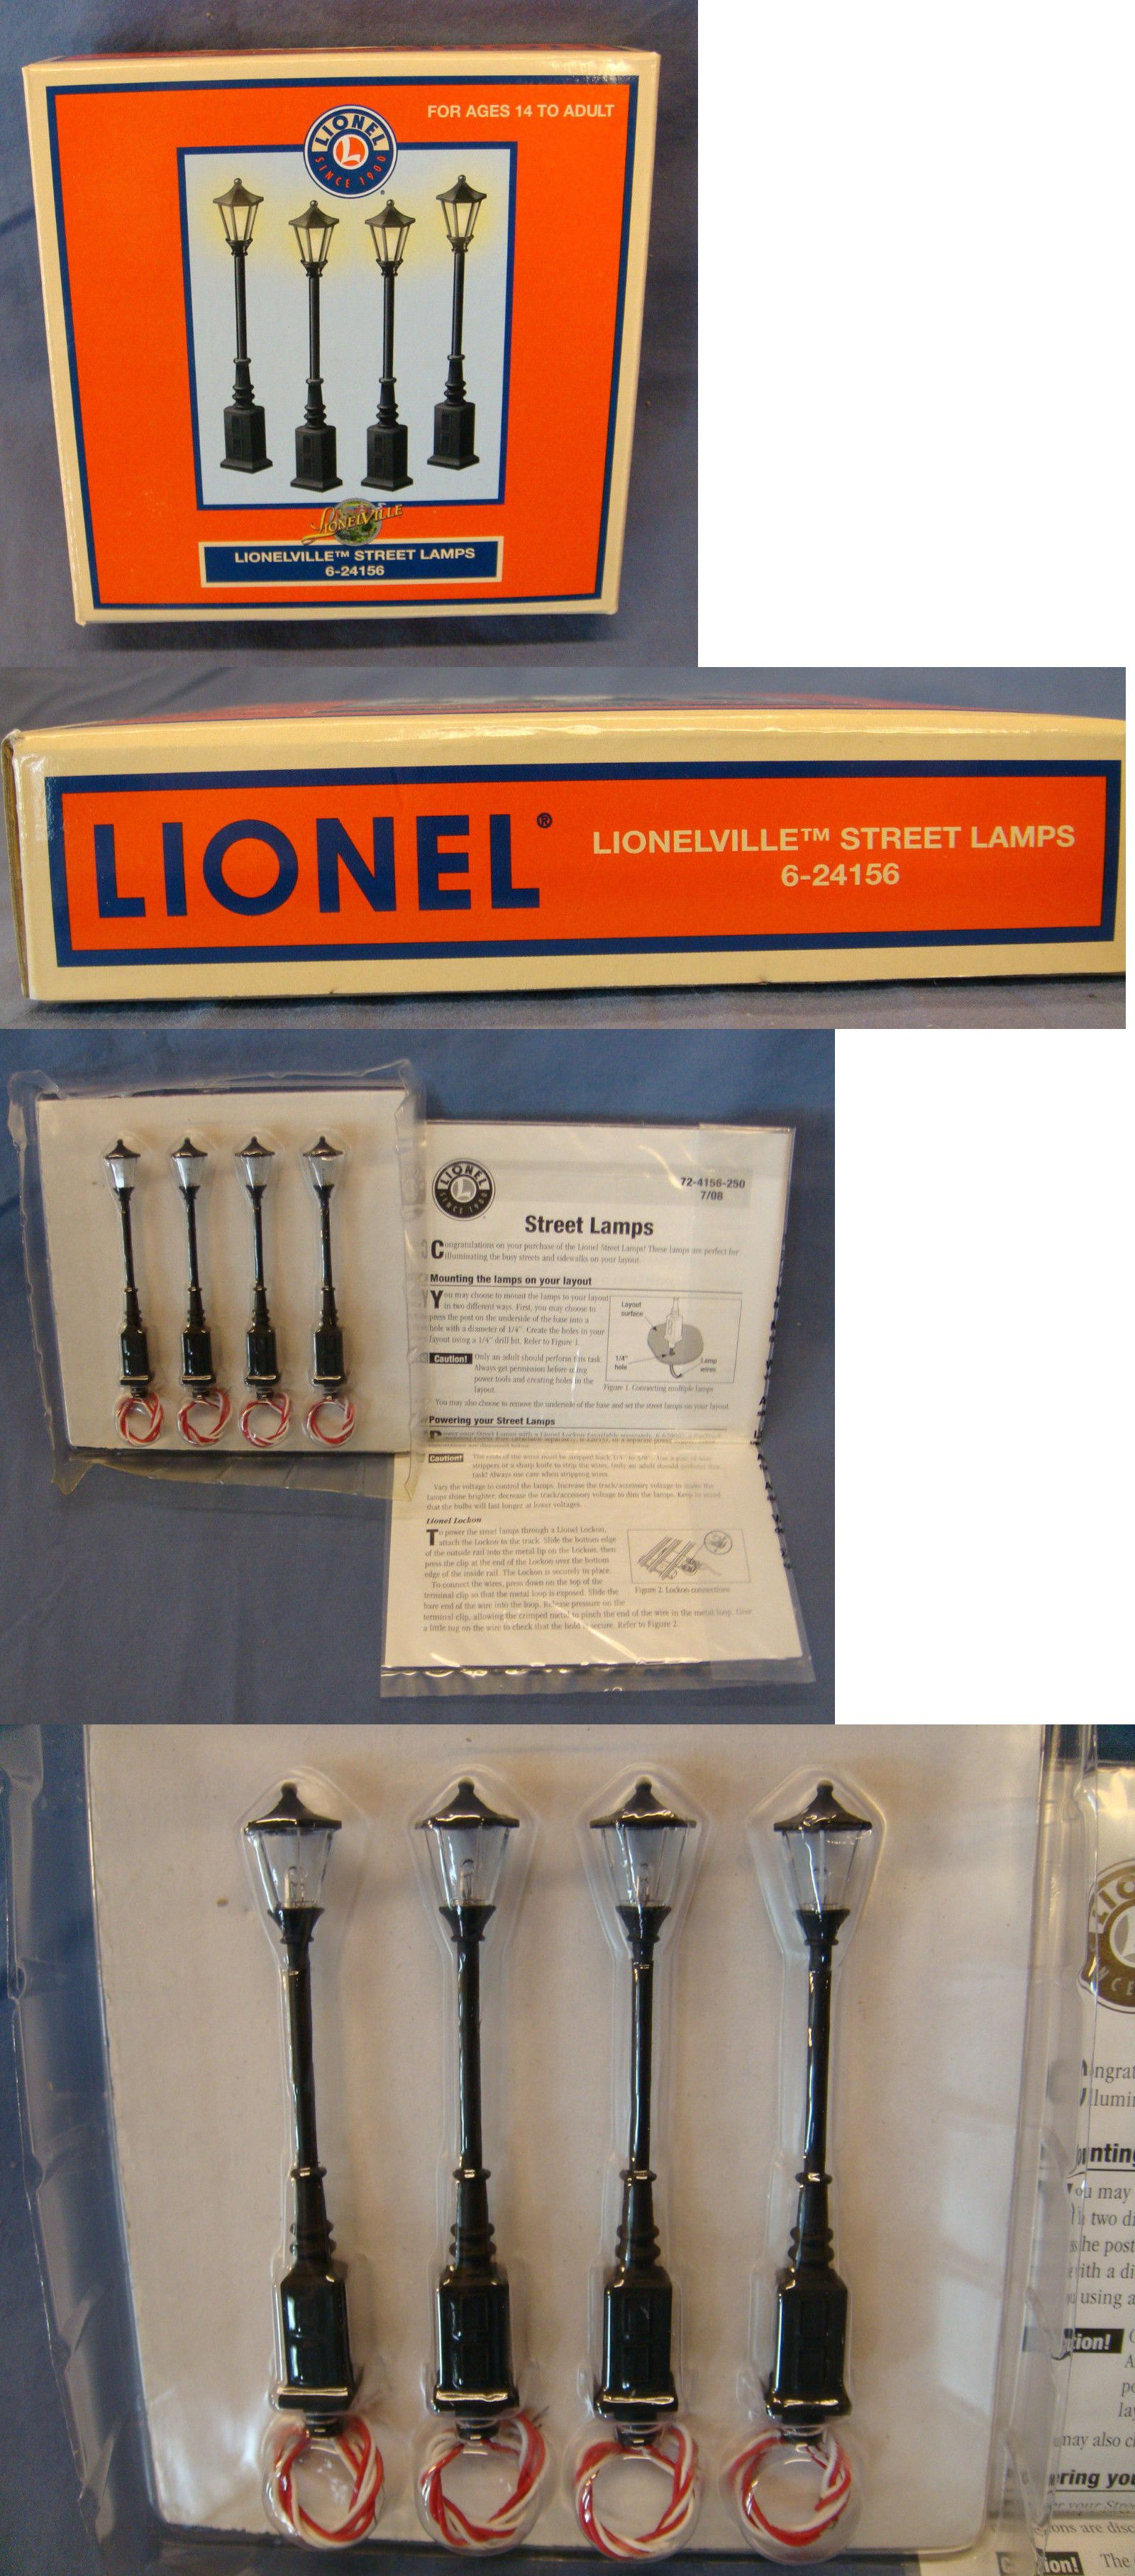 Lamps and lights 81048 lionel lionelville street lamps 6 24156 o scale new in box buy it now only 28 on ebay